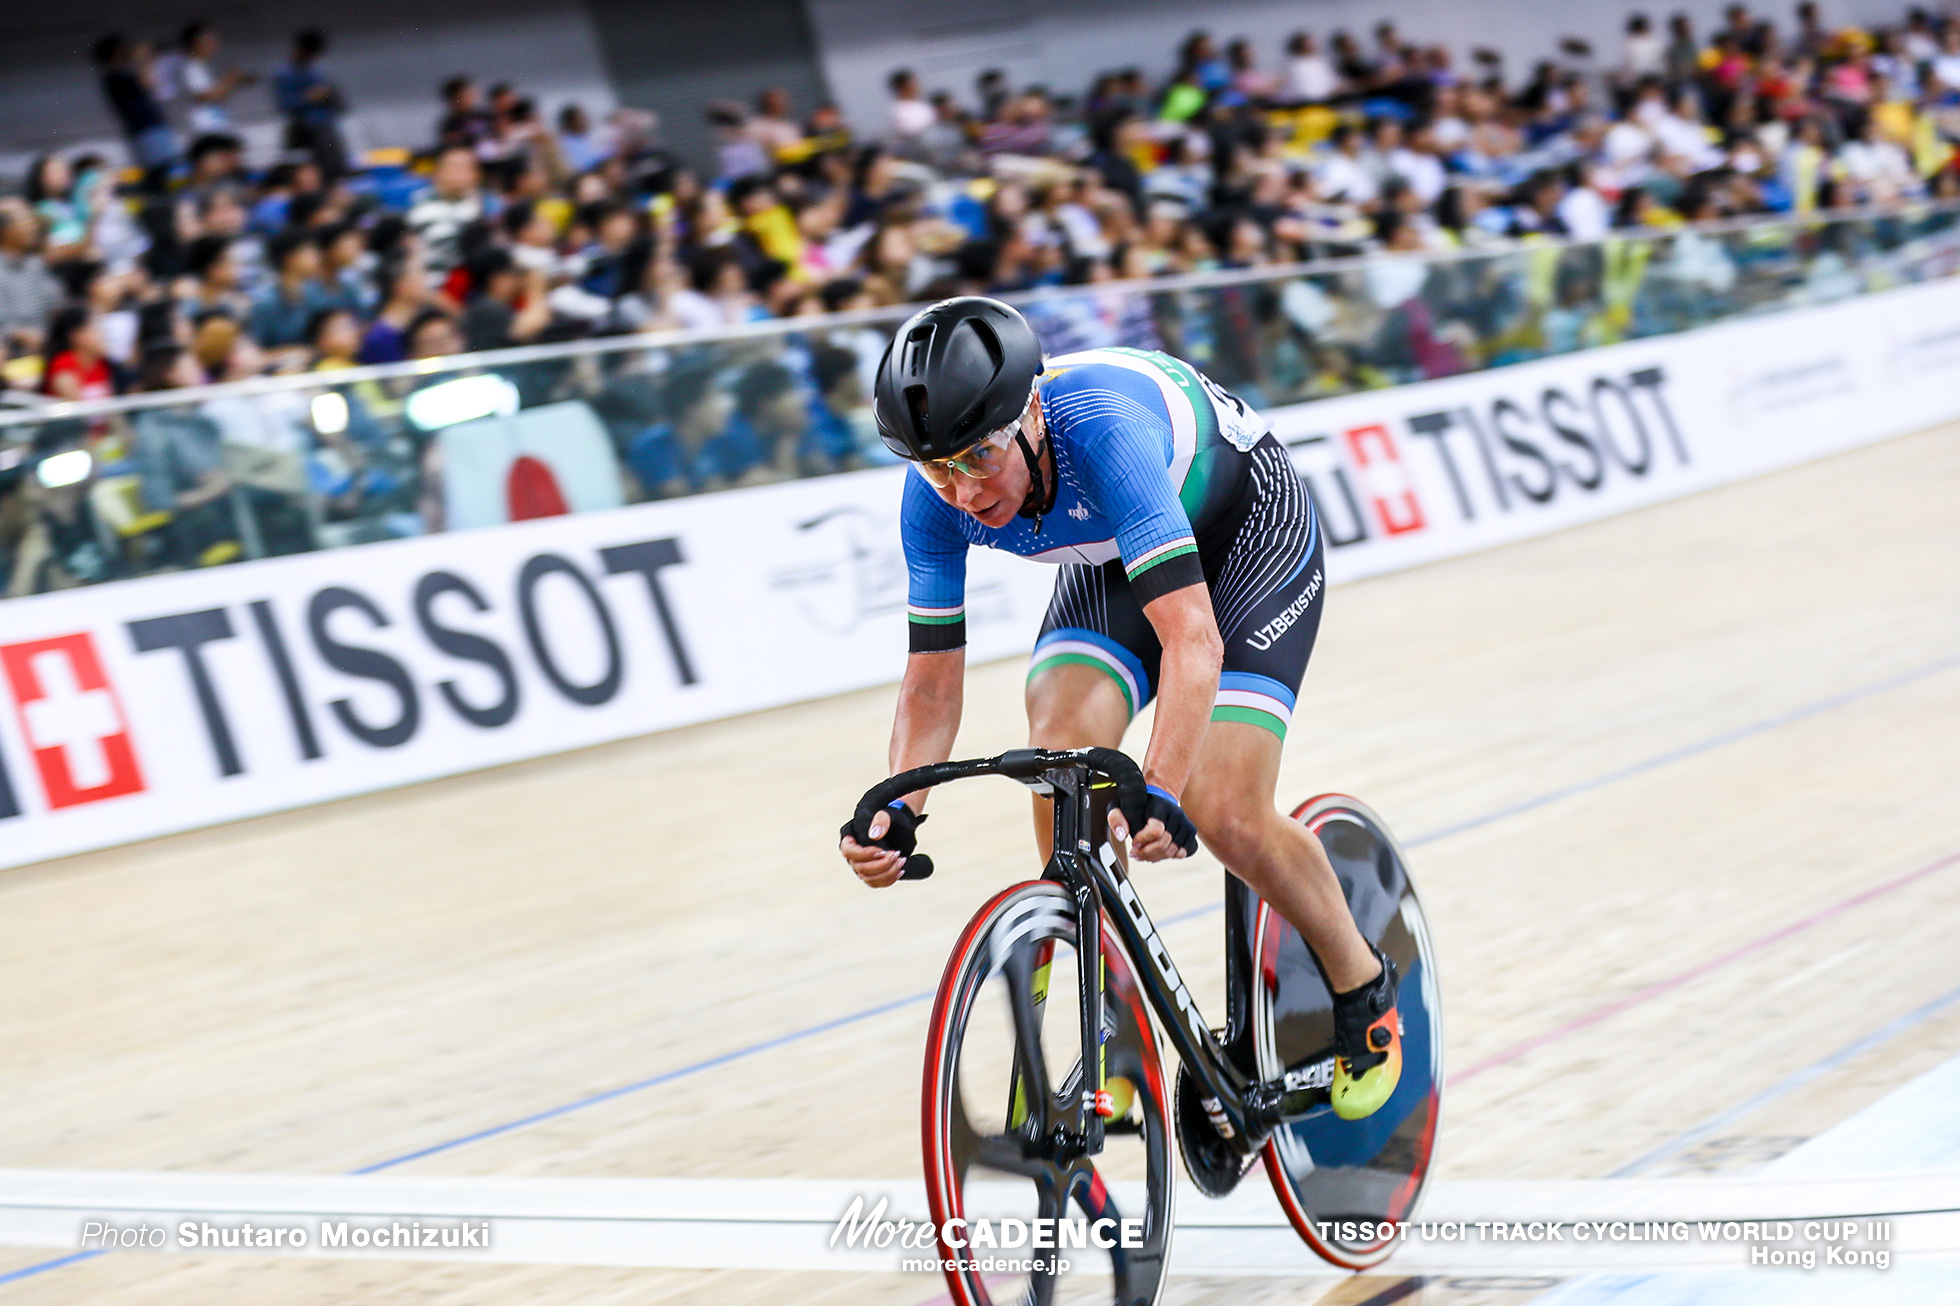 Point Race / Women's Omnium / TISSOT UCI TRACK CYCLING WORLD CUP III, Hong Kong, Olga ZABELINSKAYA オルガ・ザベリンスカヤ